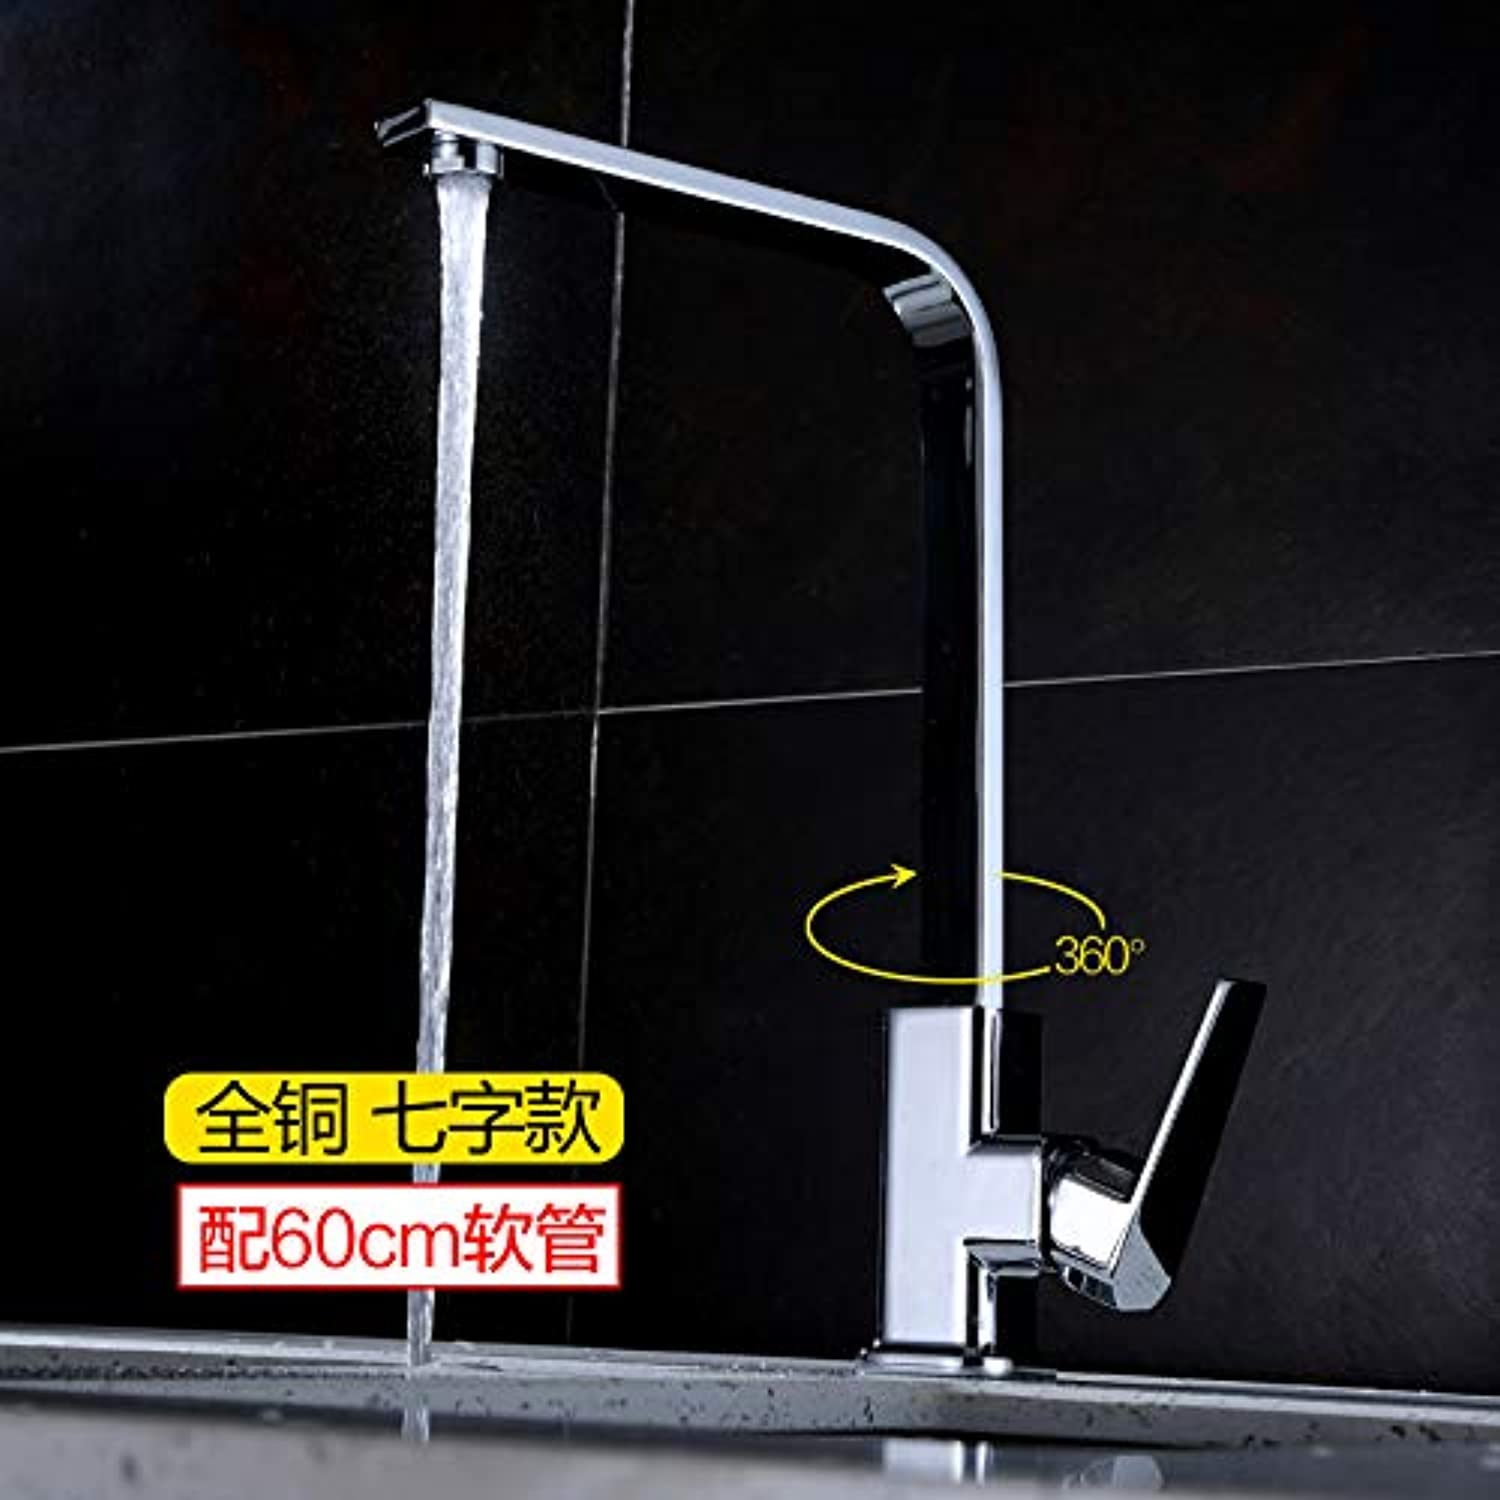 Lever Pull Down Kitchen Sink Faucet BrassSquare Tube Faucet Copper Kitchen Sink hot and Cold Single Cold Water Mixing Basin Faucet Plating Drawing,Copper hot and Cold Square Plating +60cm Water